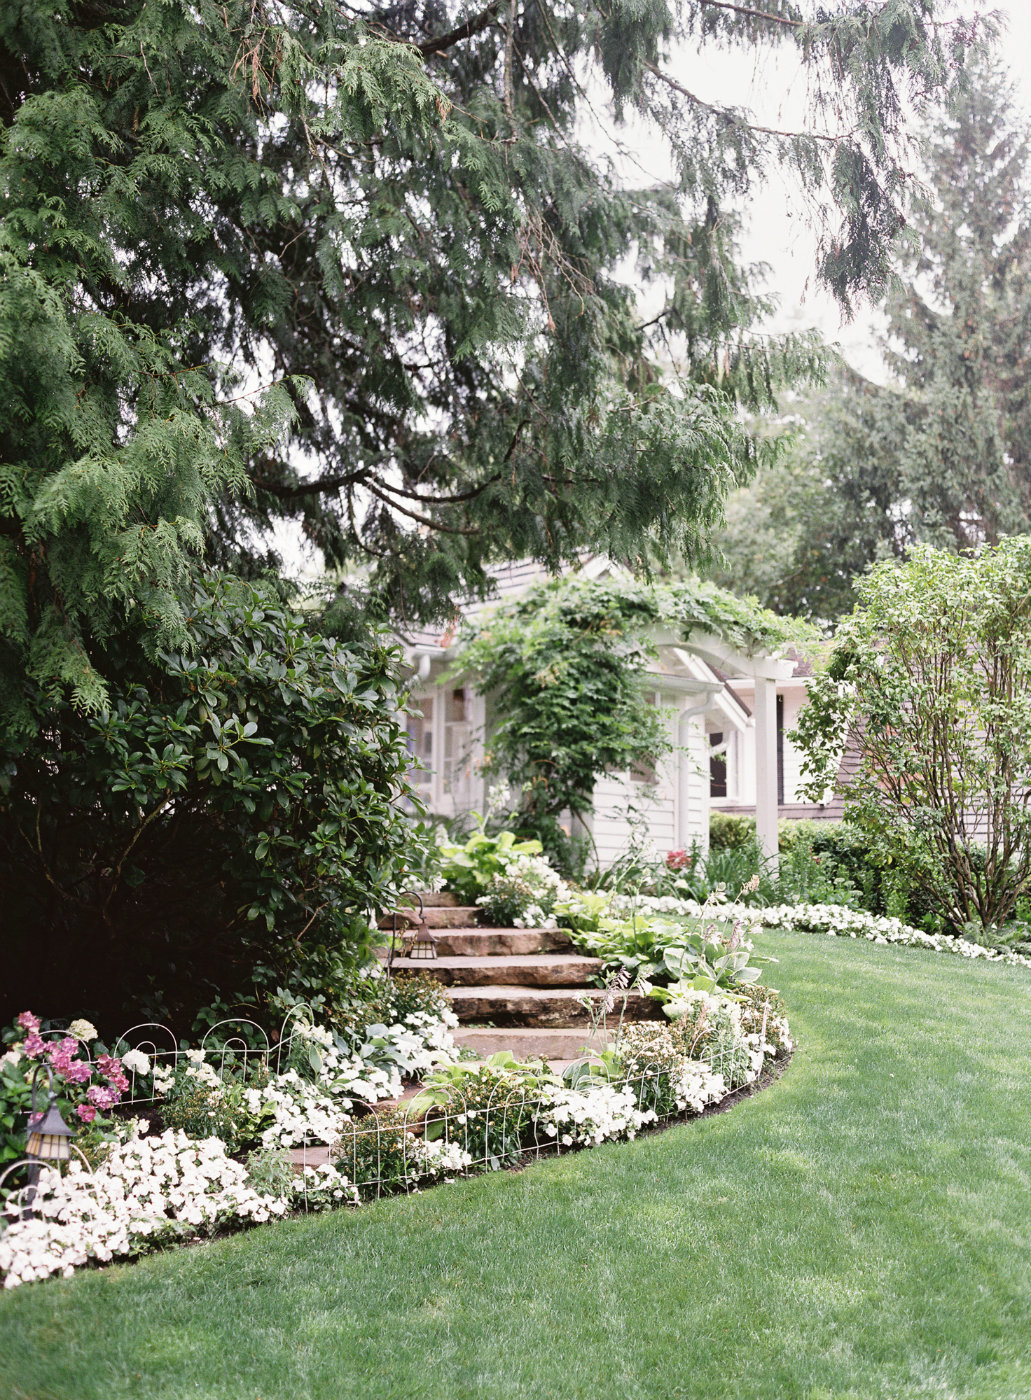 Beautiful Seattle garden wedding designed by Flora Nova Design at a private residence in Kirkland